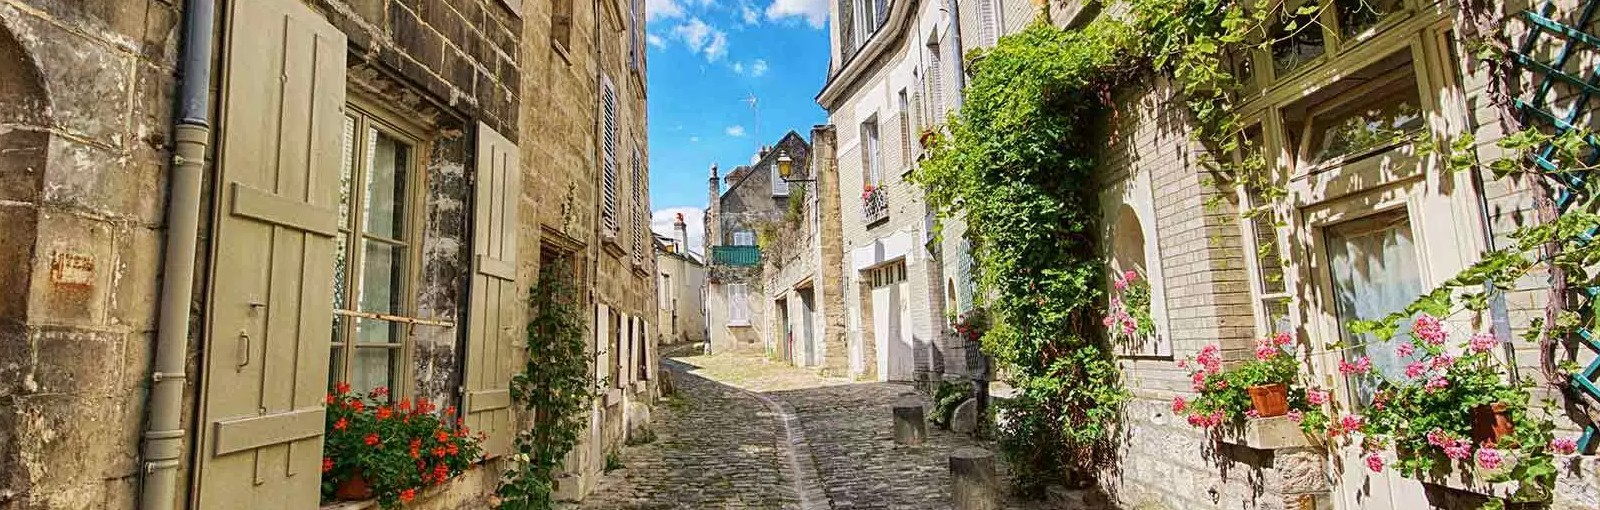 Tours Senlis - Half days - Day tours from Paris